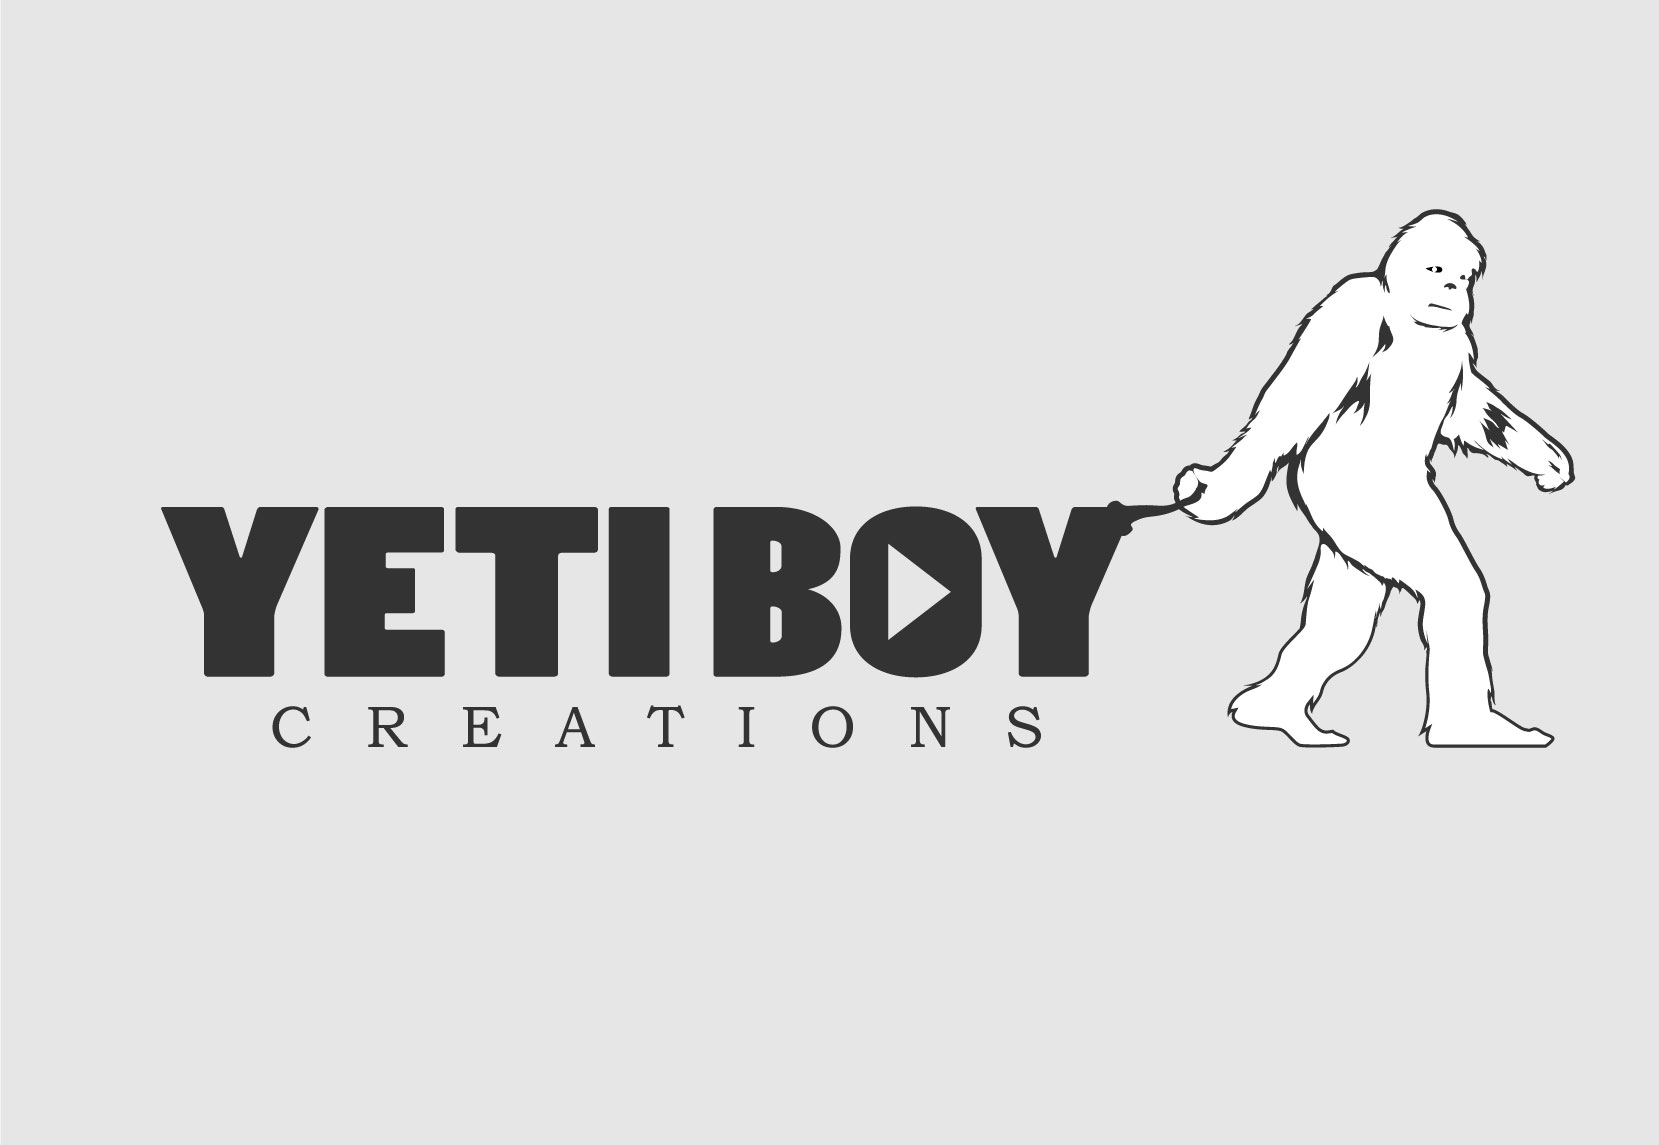 Logo Design by olii - Entry No. 69 in the Logo Design Contest Captivating Logo Design for Yeti Boy Creations.